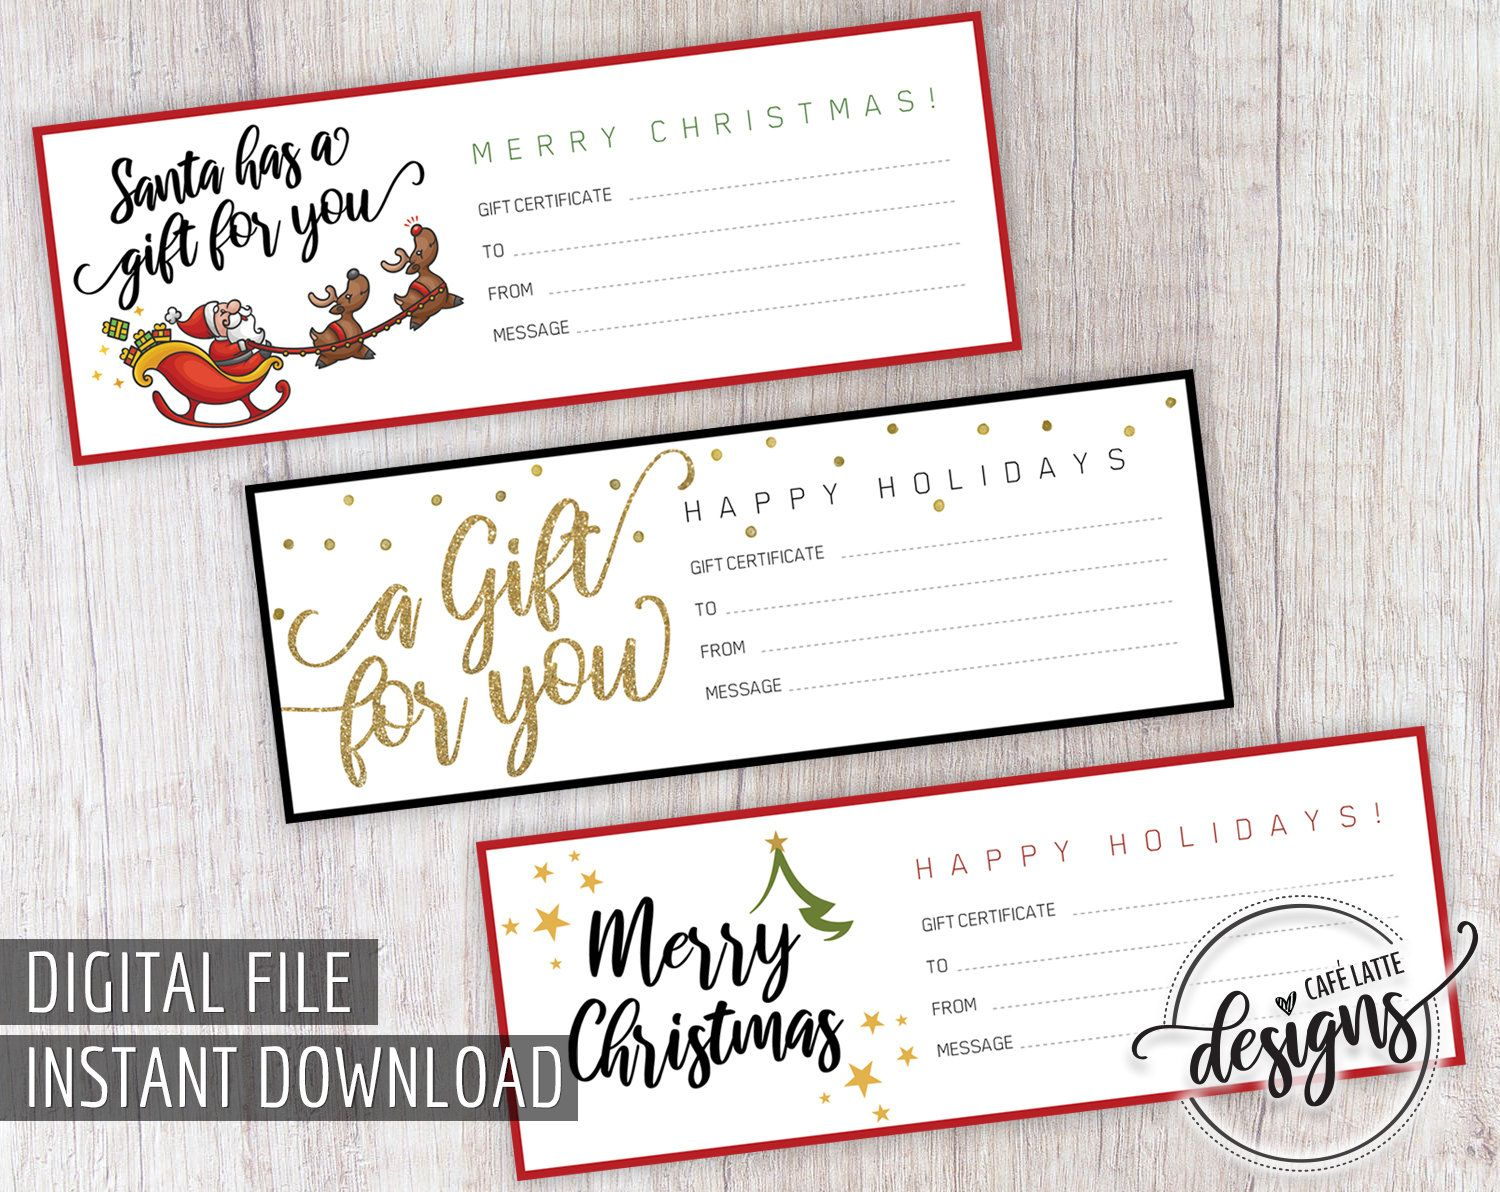 Christmas gift certificate gift certificate printable